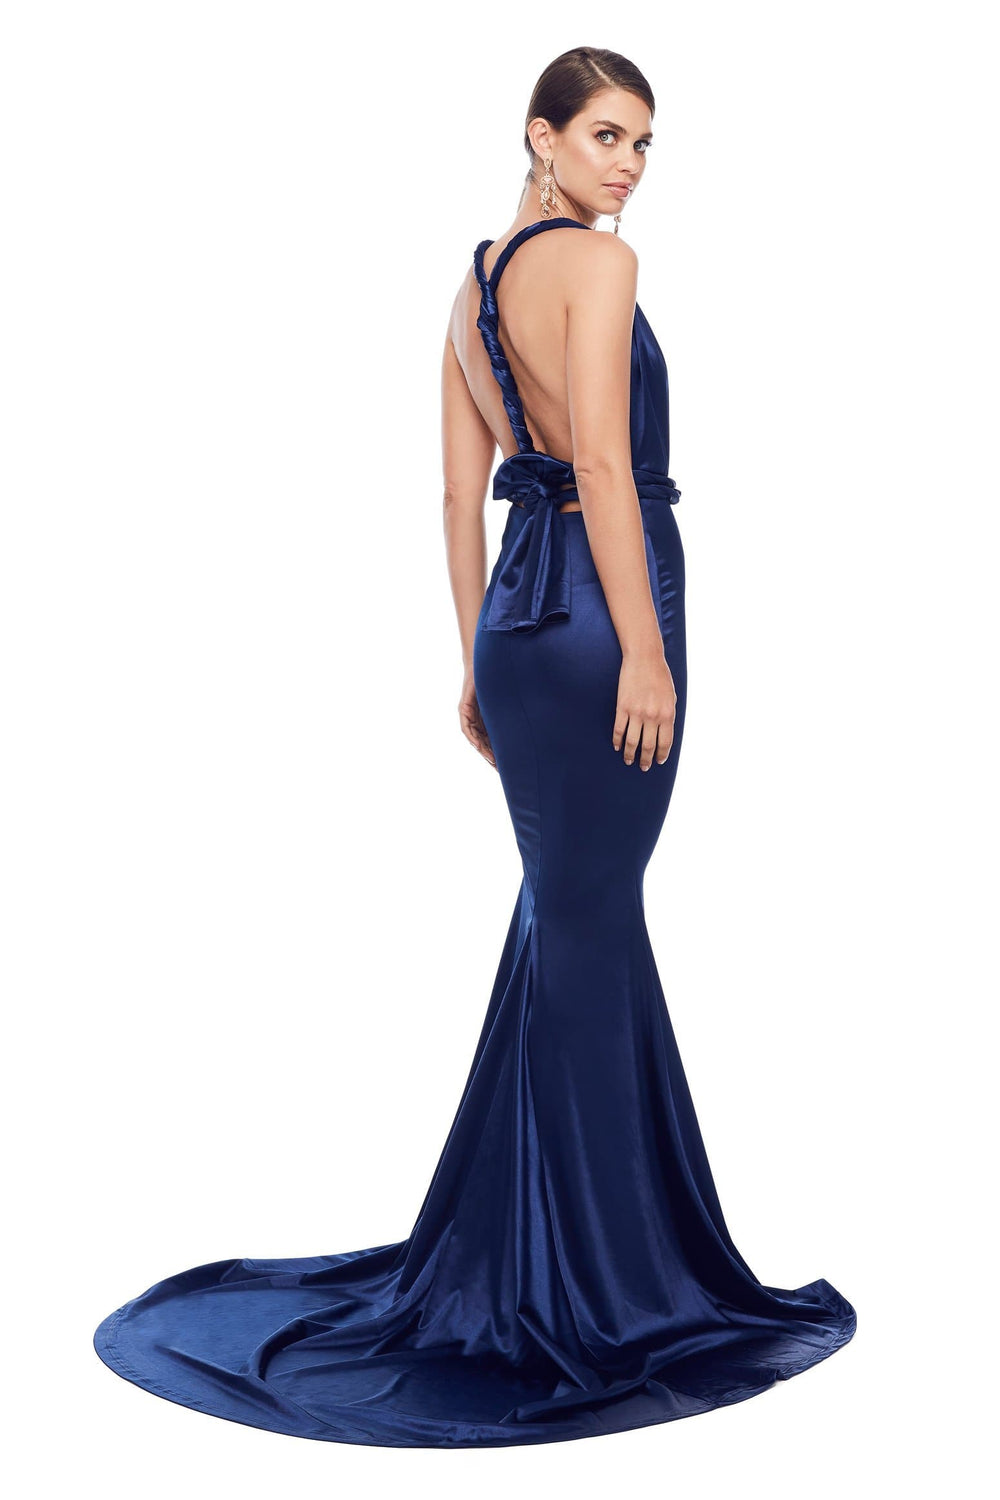 Lena - Navy Satin Gown with Plunging Neckline and Long Mermaid Train